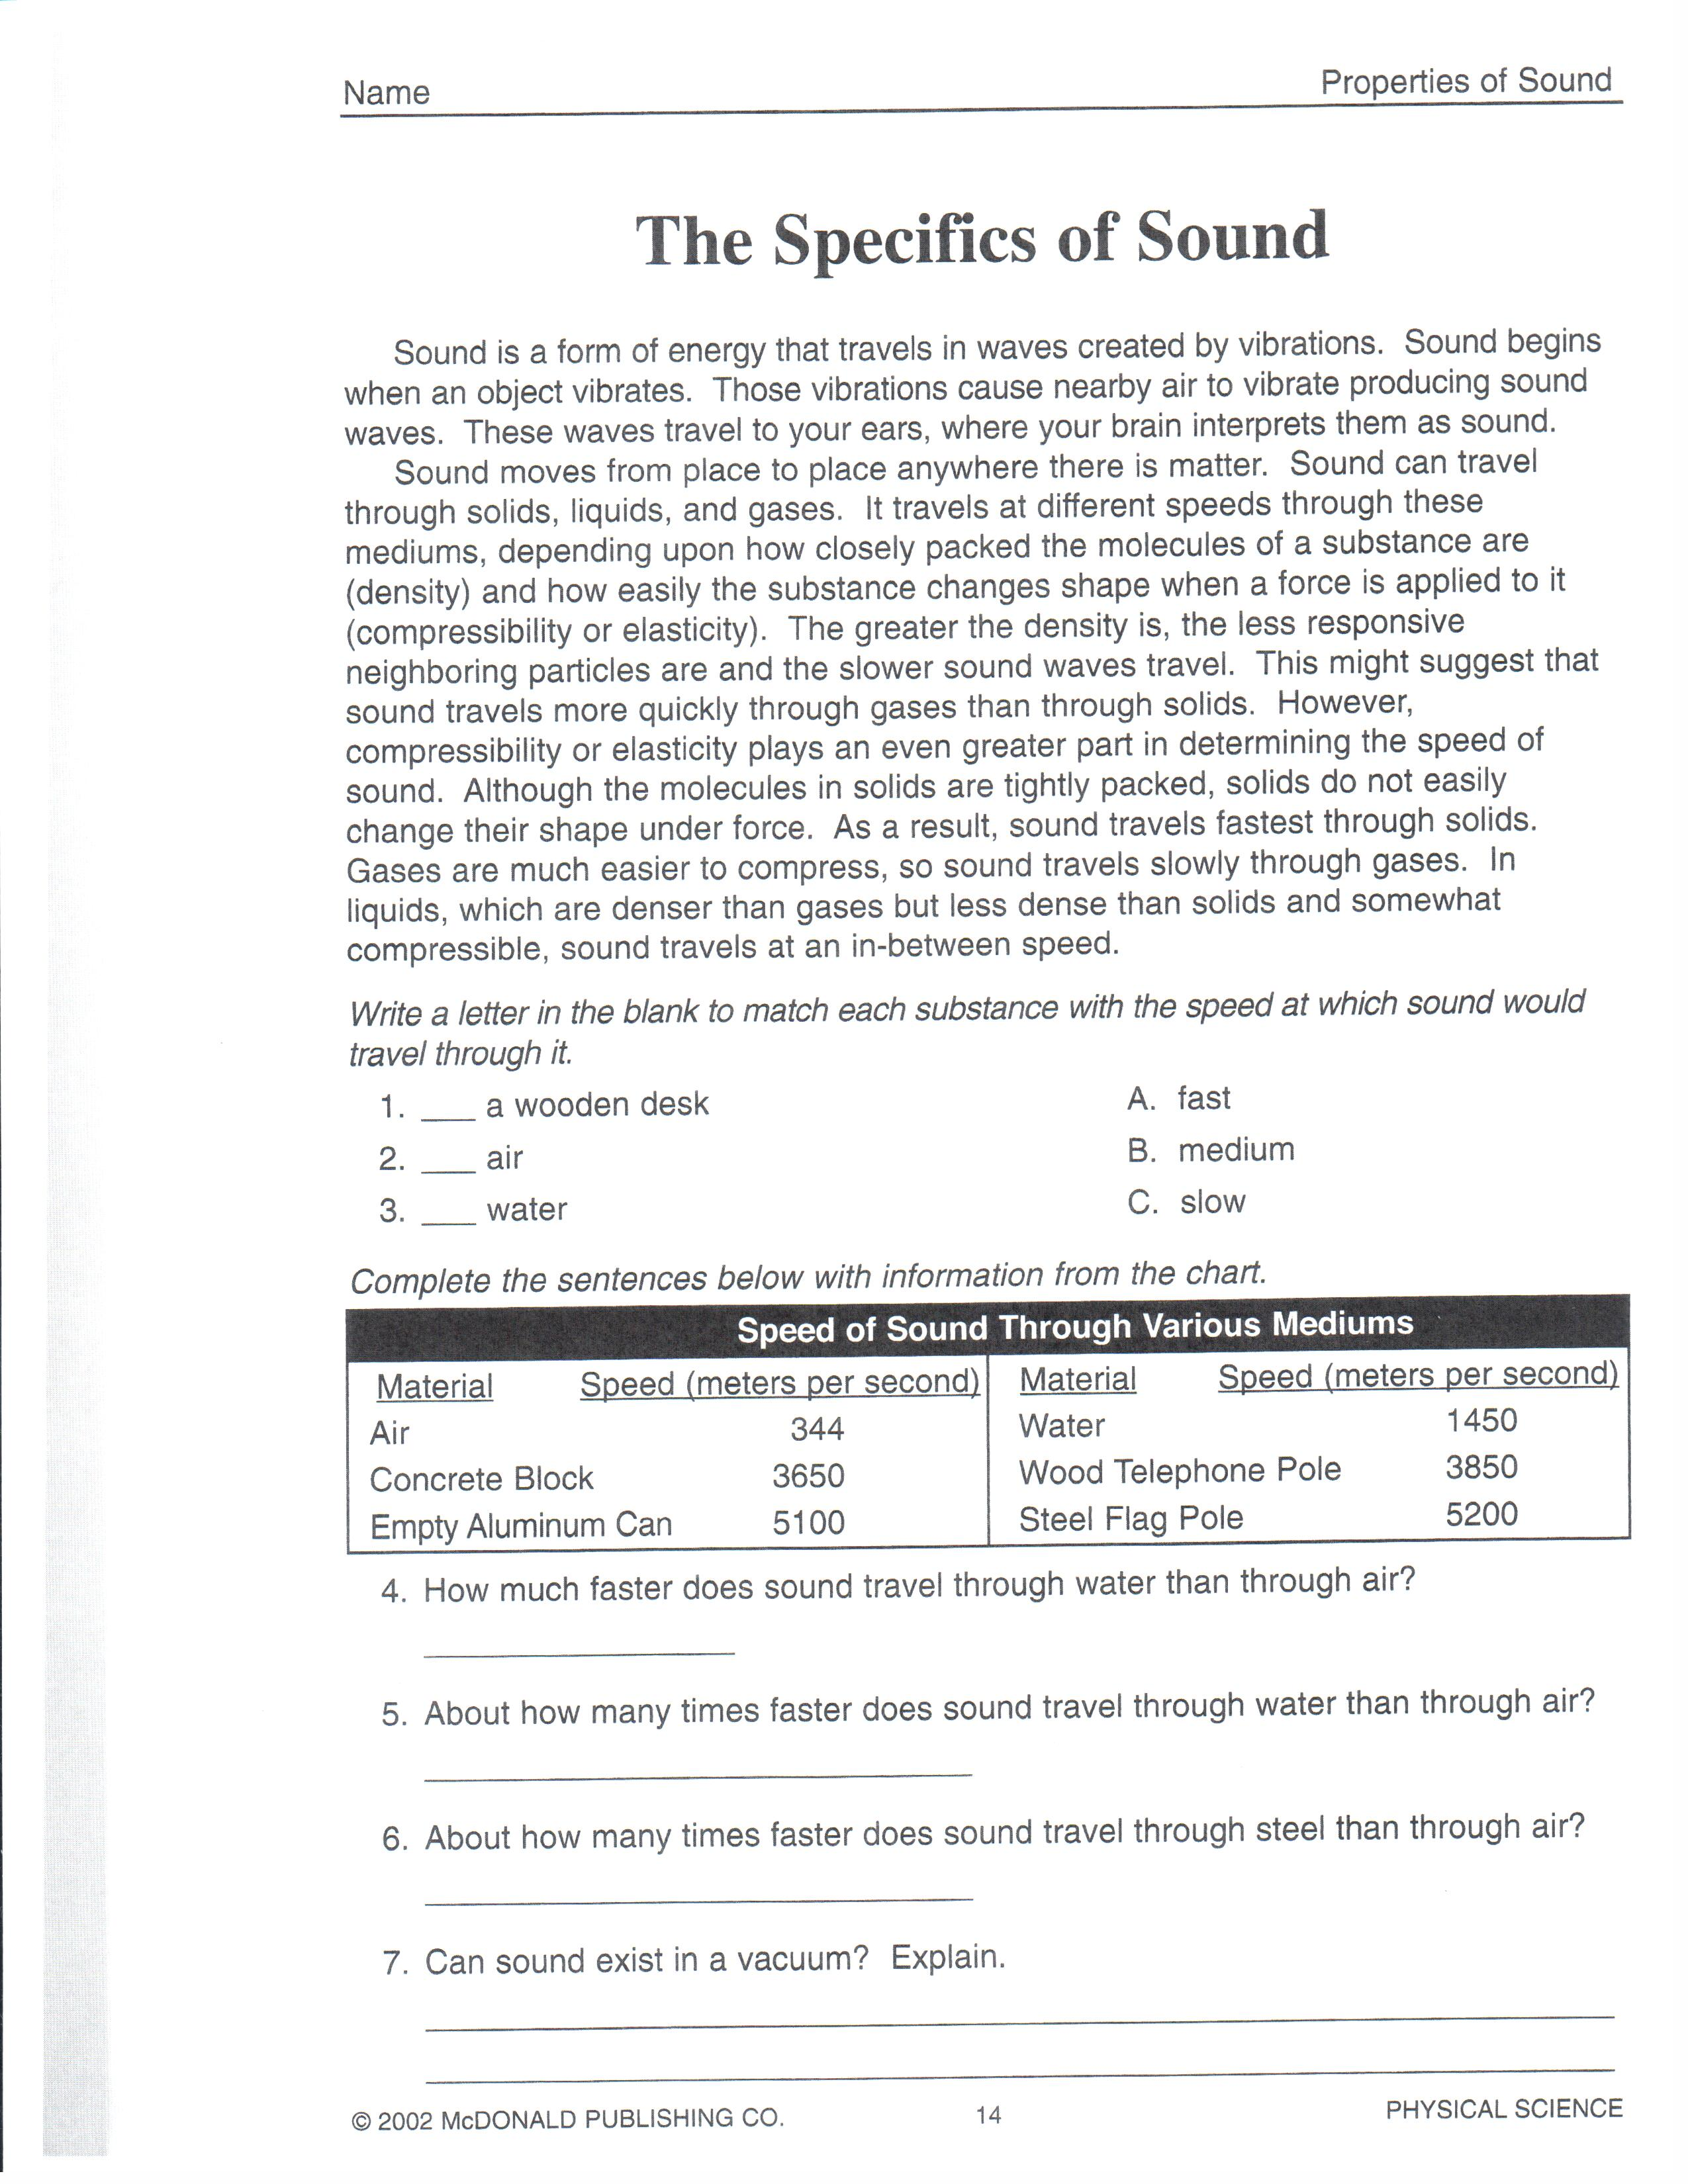 Uncategorized The Nature Of Science Worksheet Answers physical science march 2013 mrs garchows classroom 8th grade 03 15